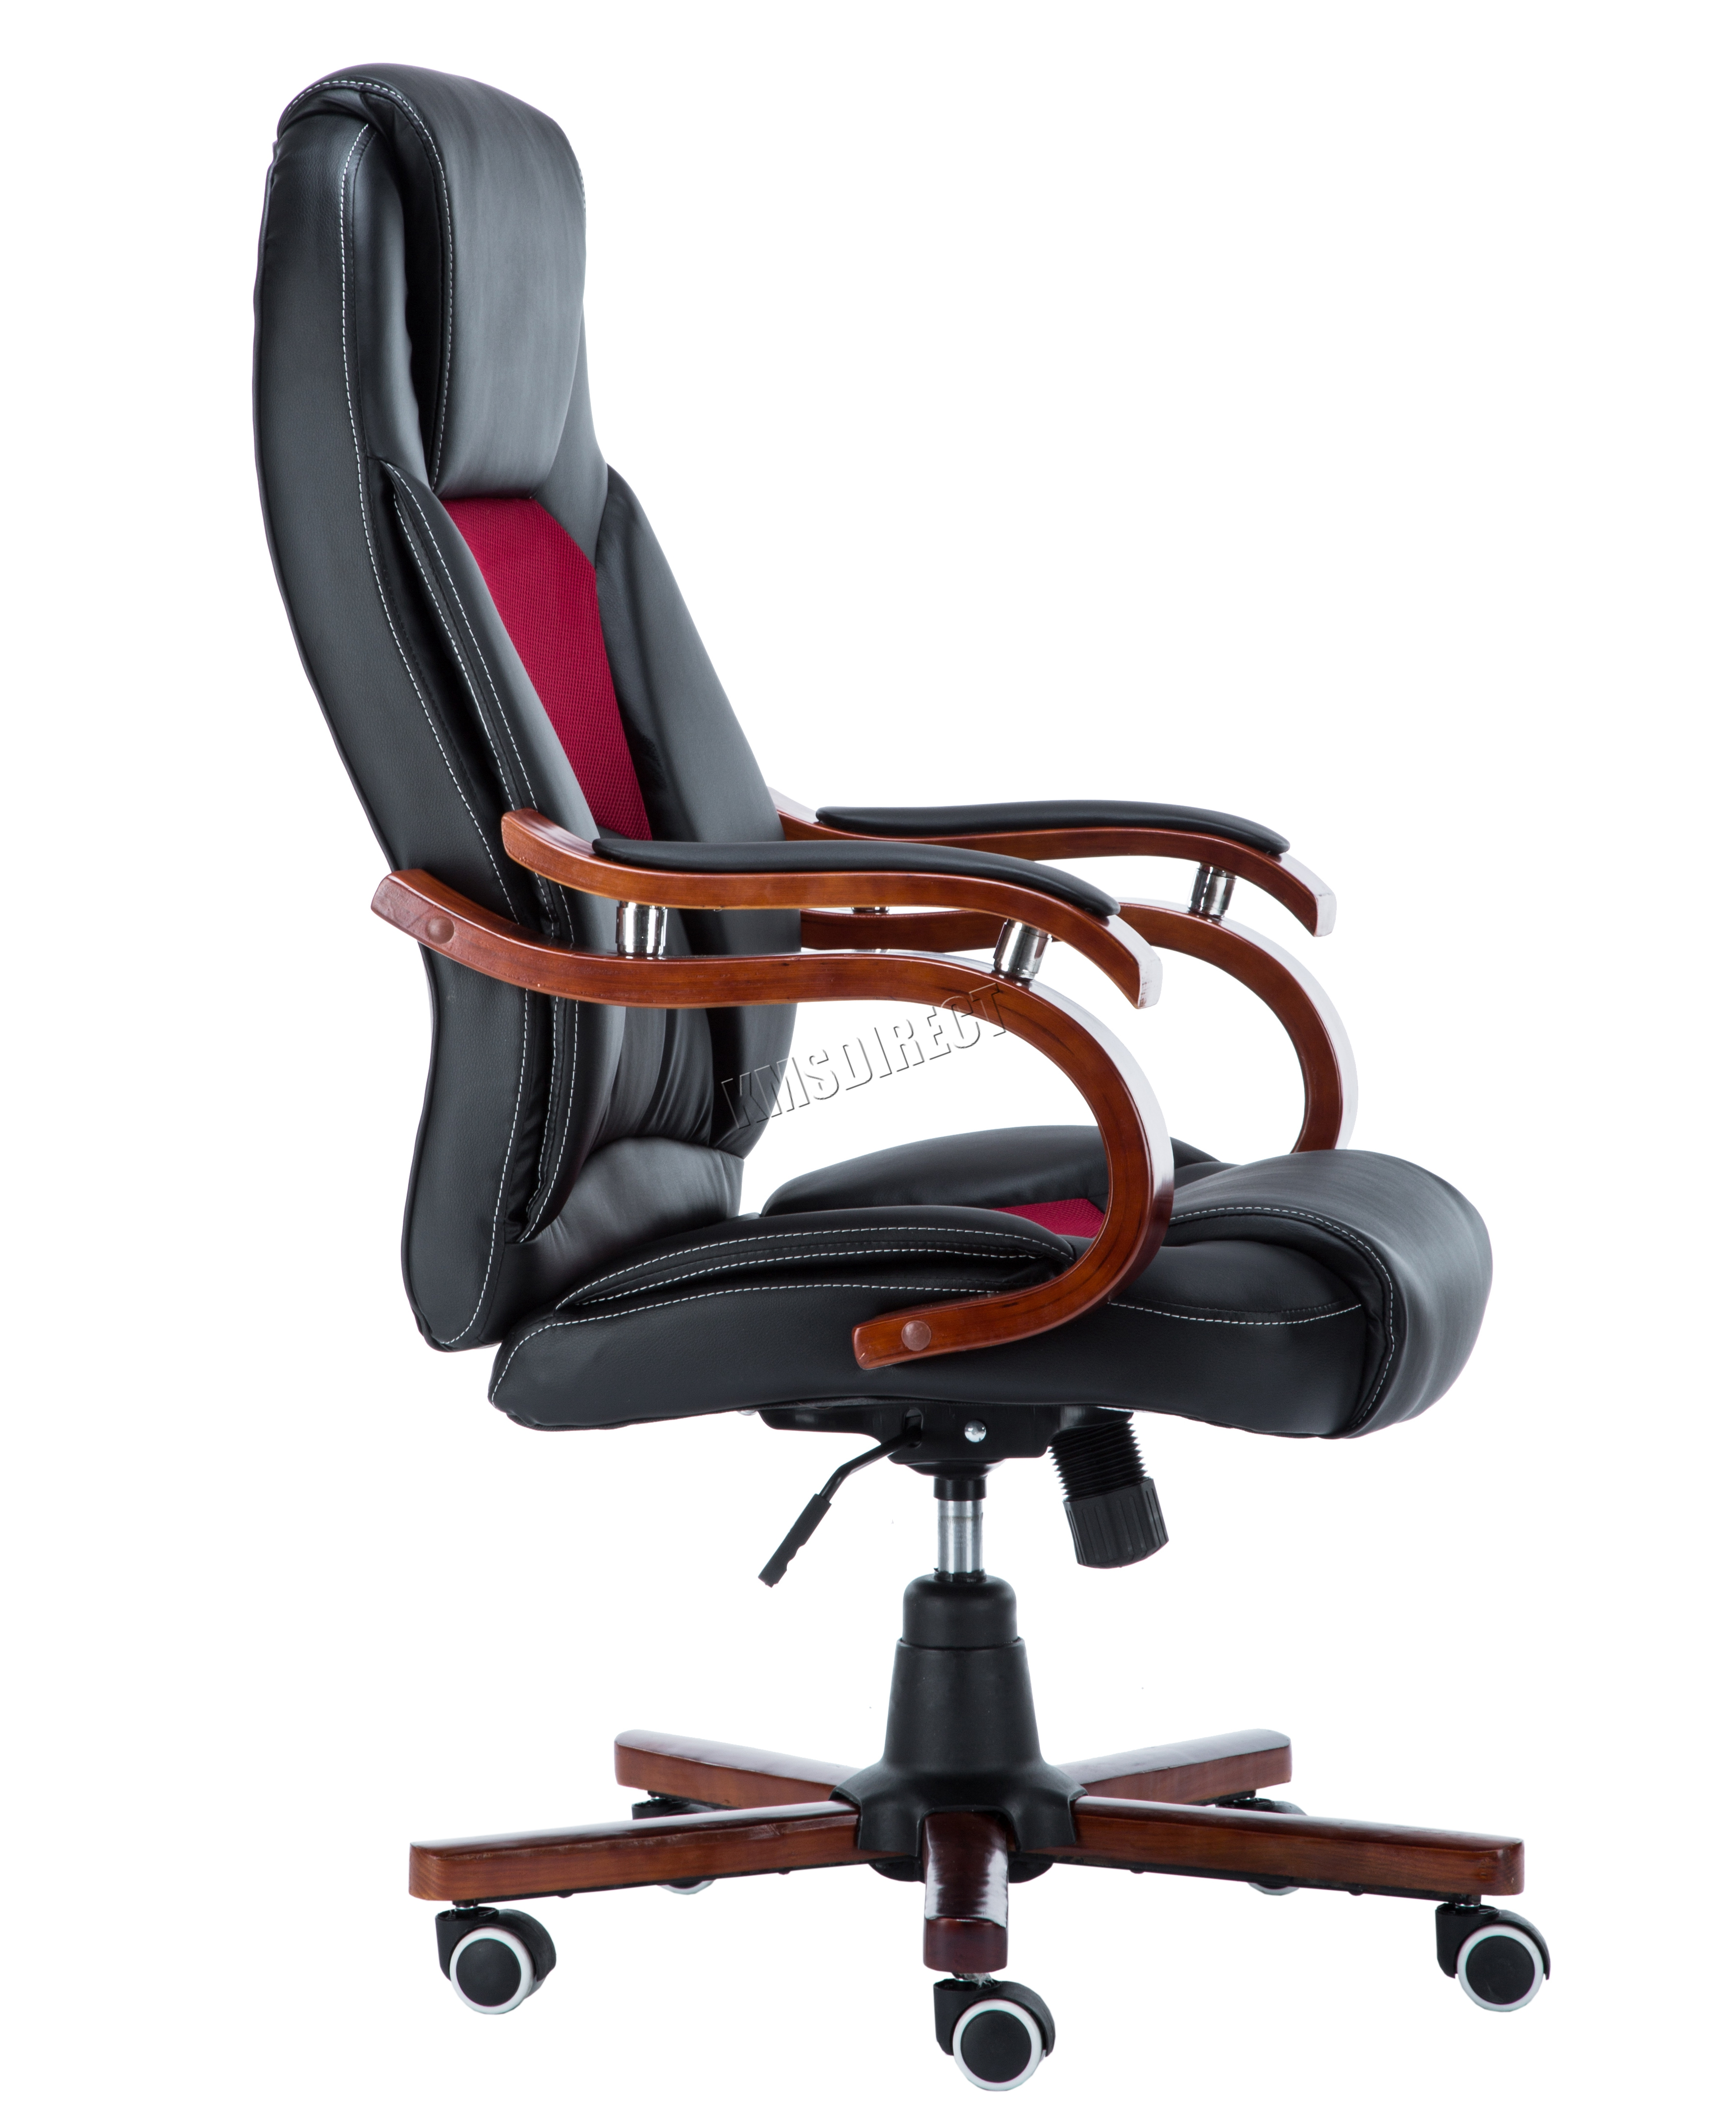 FoxHunter puter Executive fice Desk Chair PU Leather Swivel